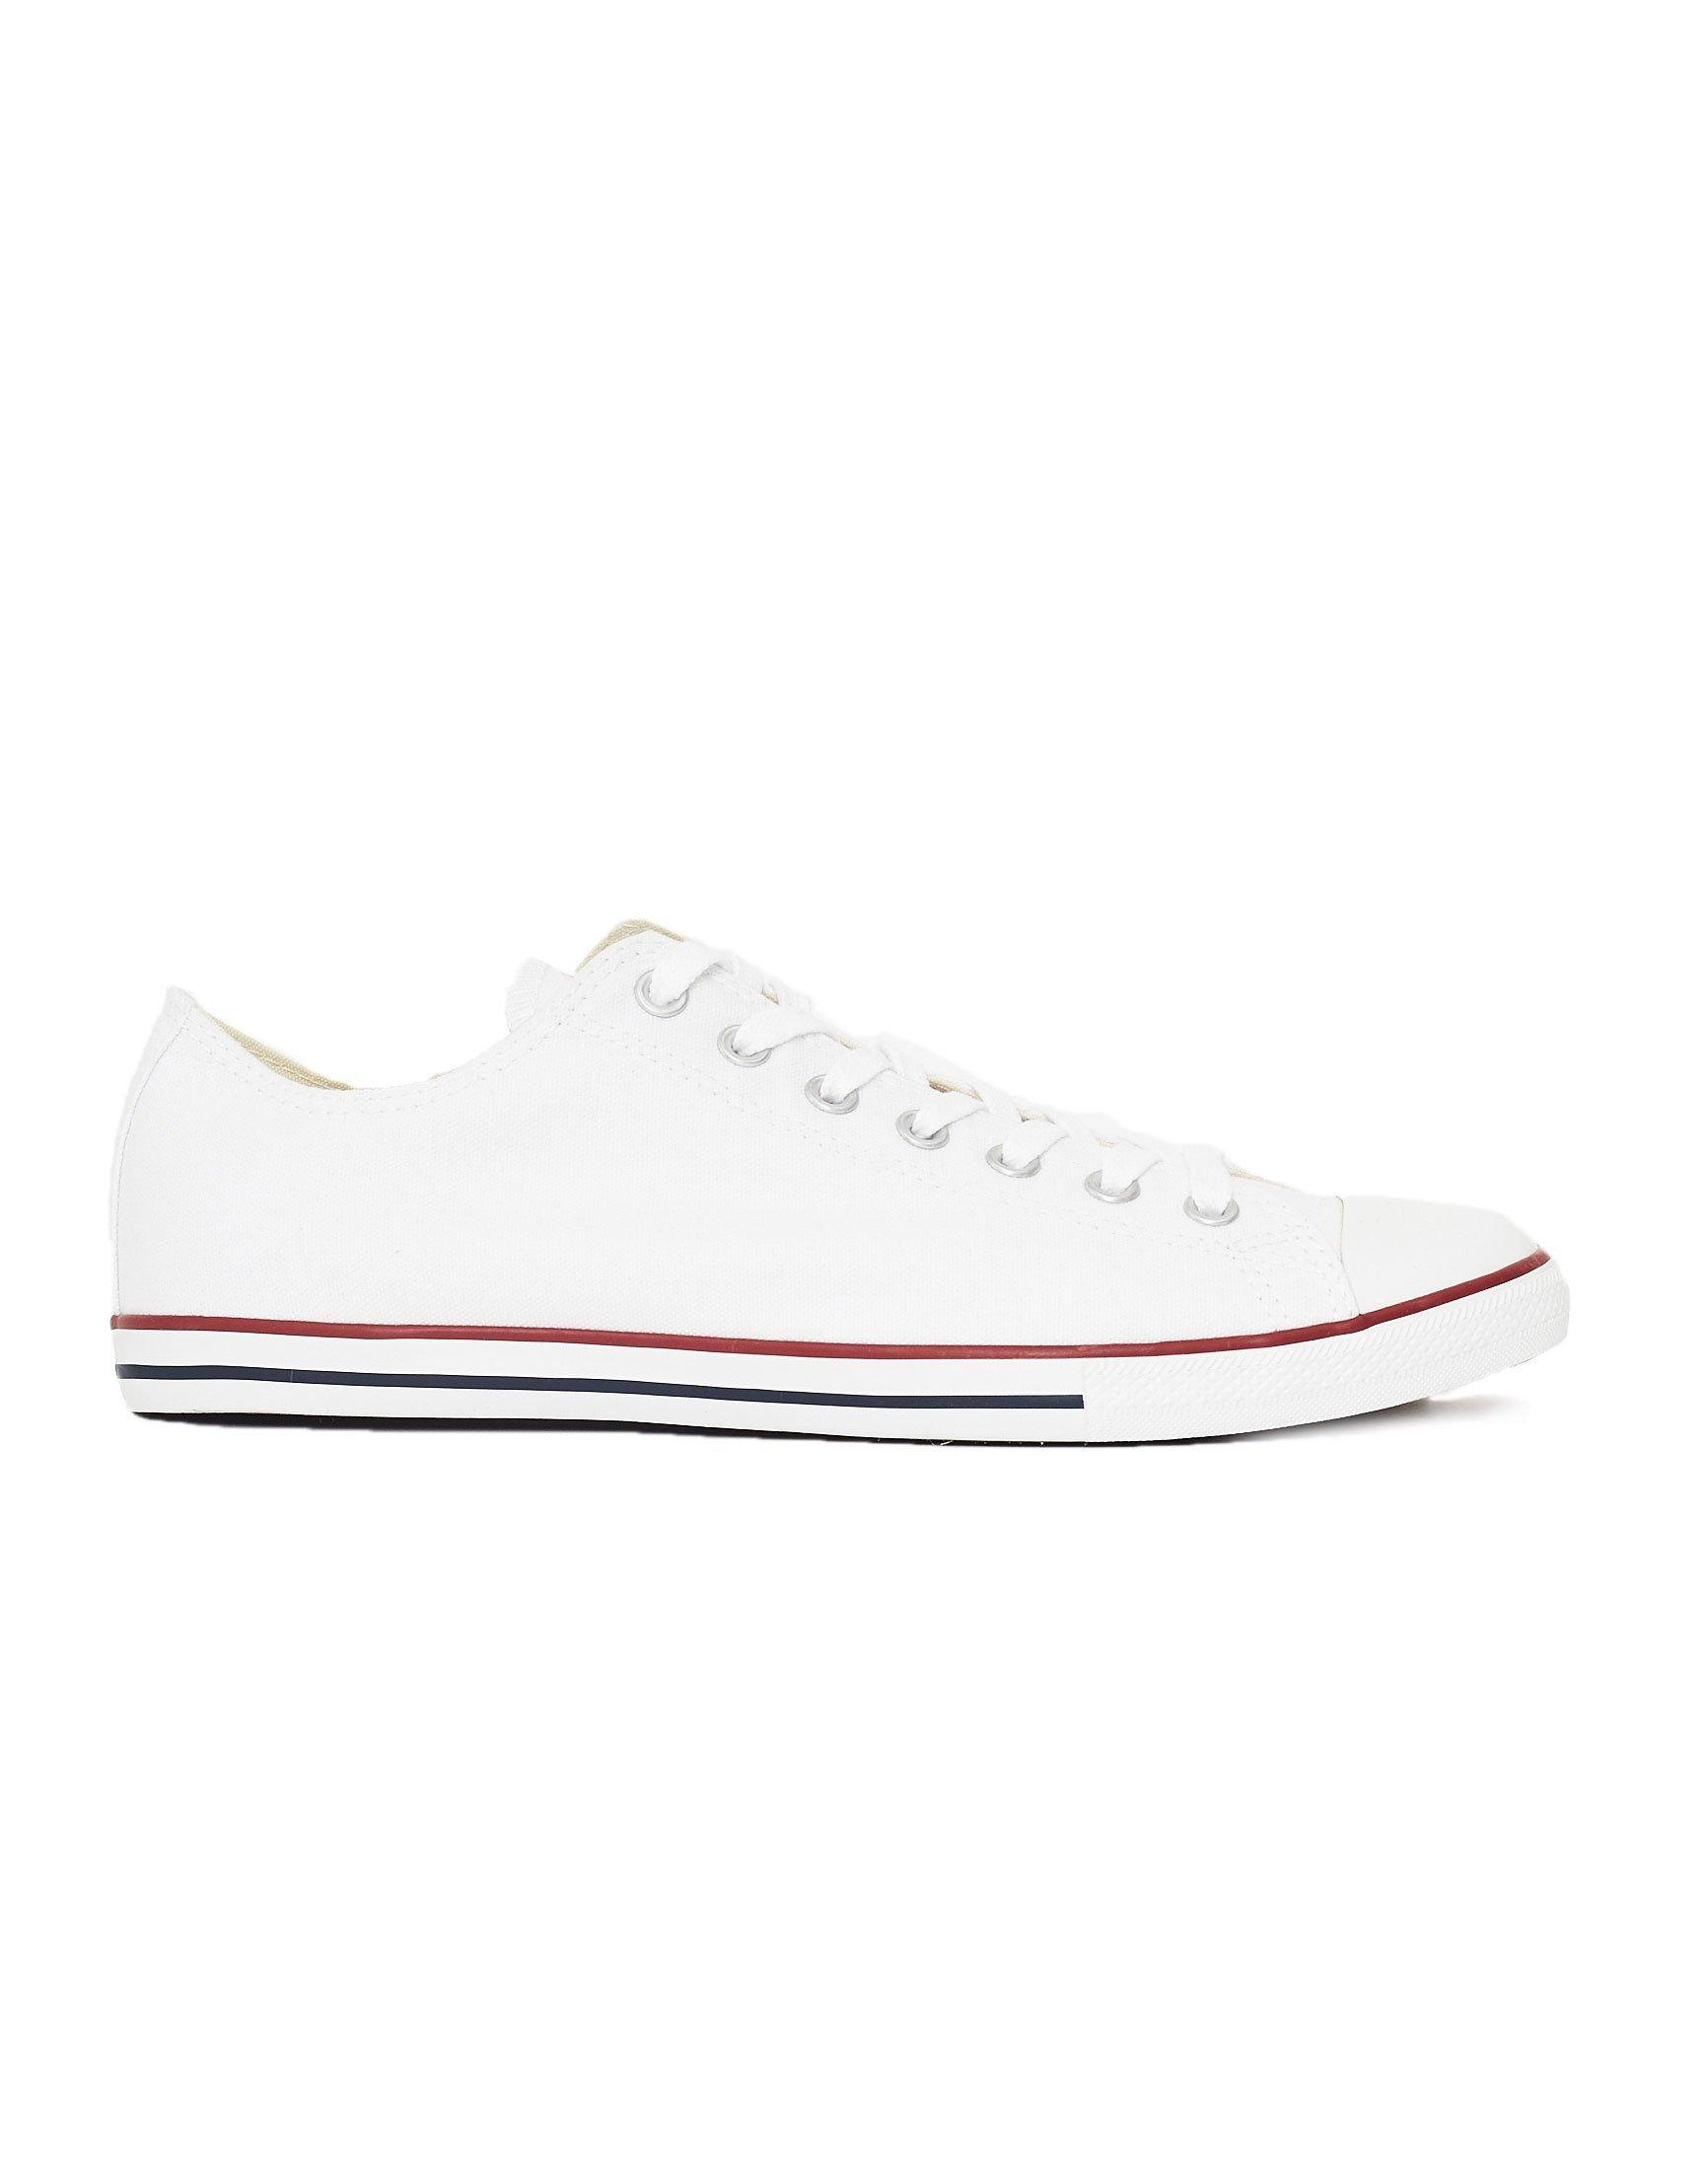 1eed5ec7804827 Lyst - Converse Chuck Taylor All Star Lean Plimsolls White in White for Men  - Save 32%